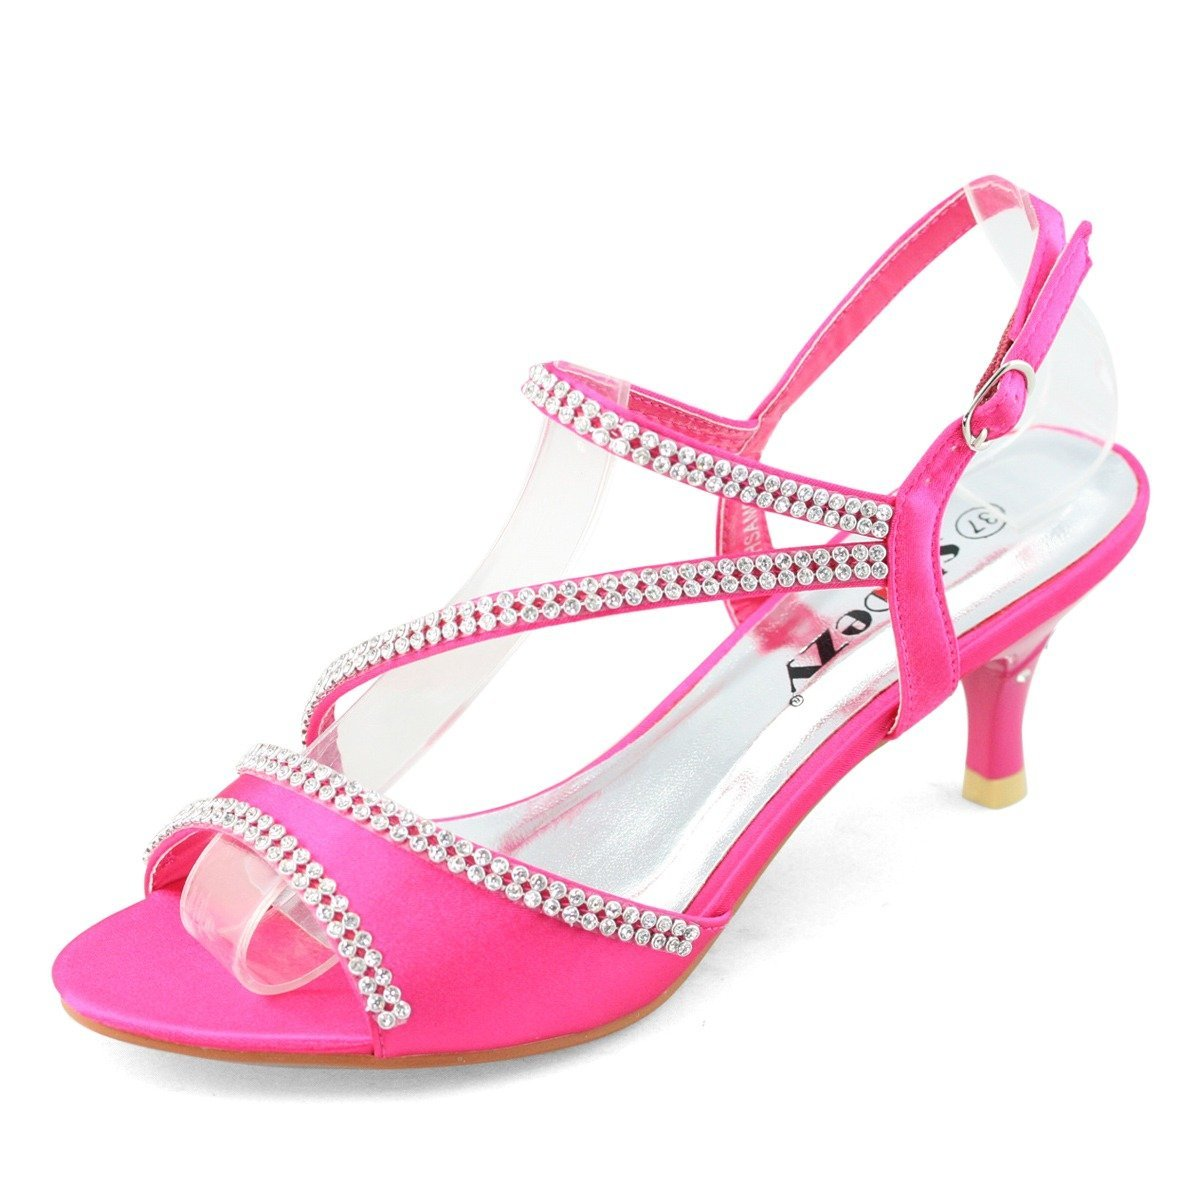 SHOEZY Ladies Satin Kitten Heels Dress Shoes Ankle Strap Xmas ...